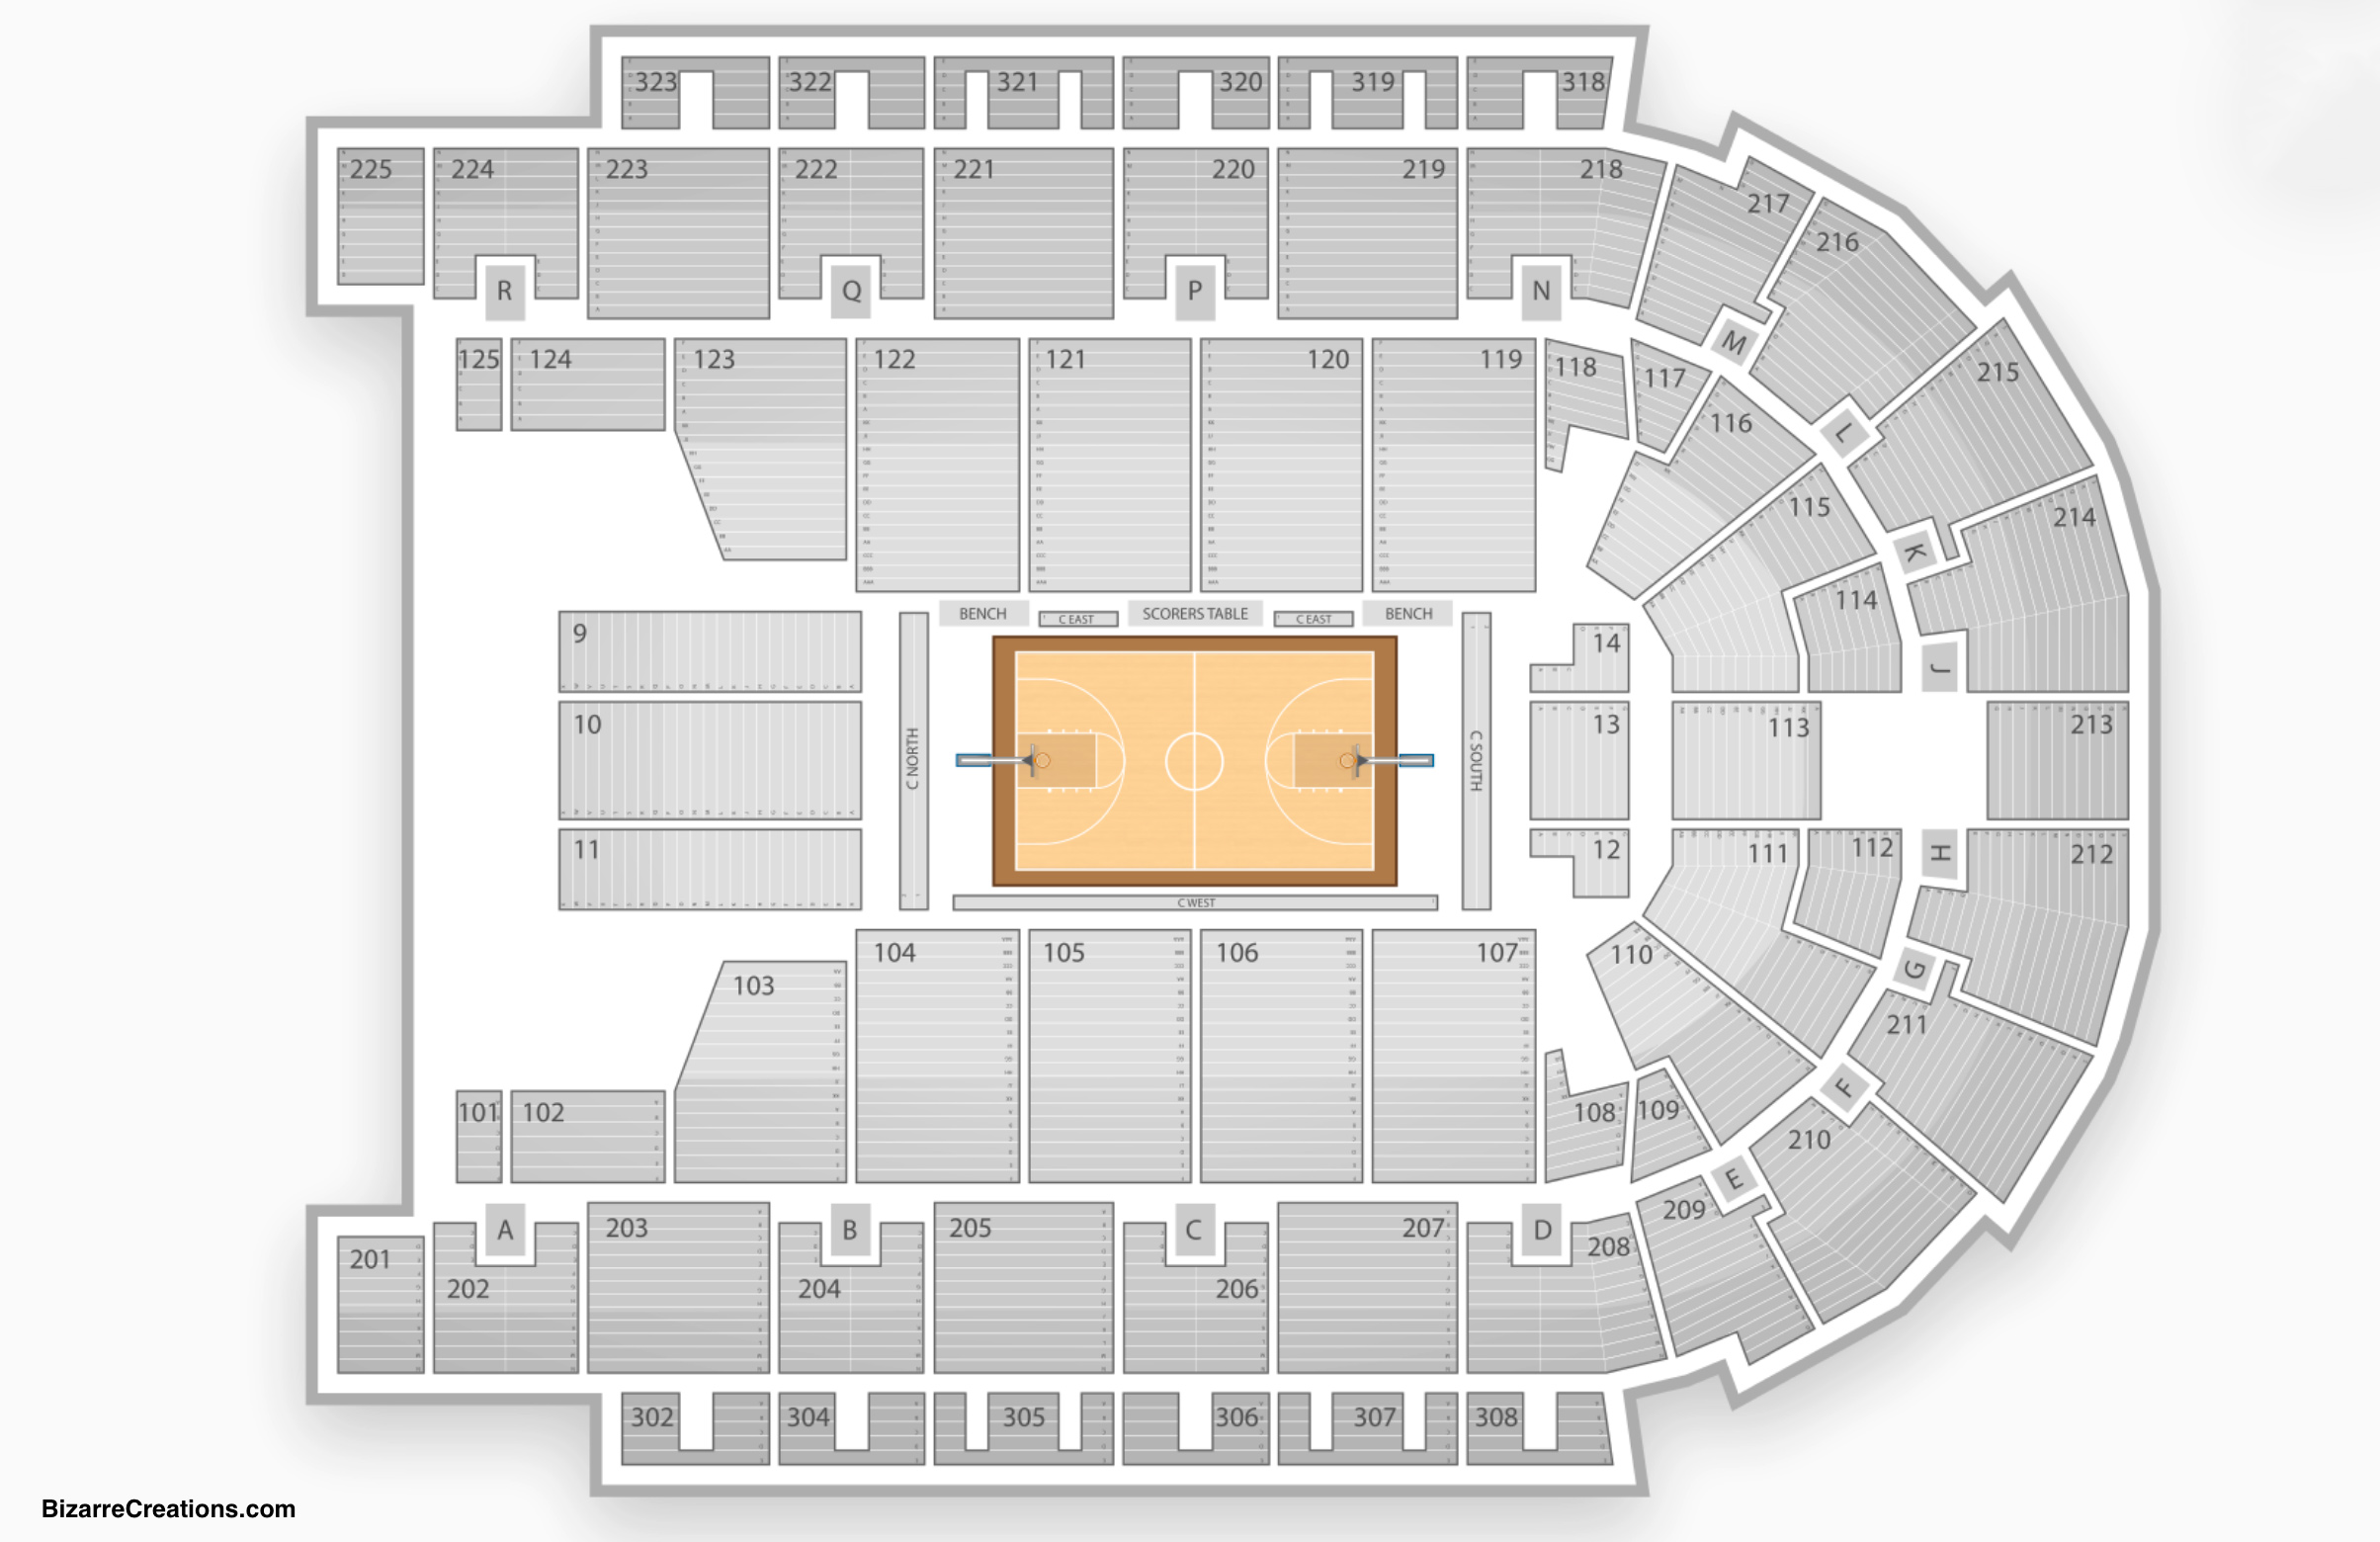 Boardwalk Hall Seating Chart Seating Charts Amp Tickets